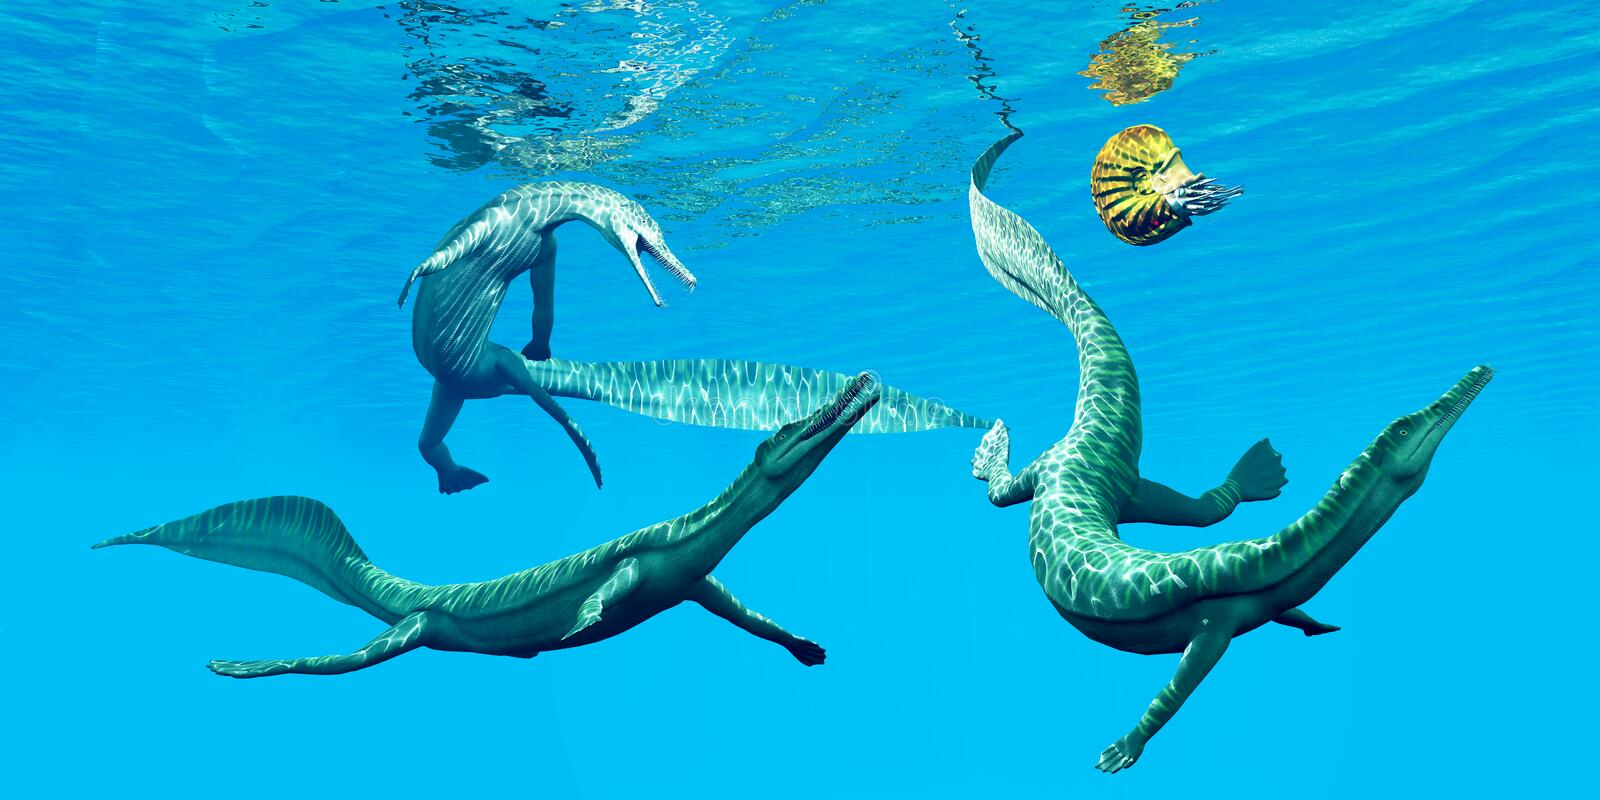 Mesosaurus Marine Reptiles. Mesosaurus reptiles go after an Ammonite which was a frequent prey in the oceans of the Permian Period stock illustration